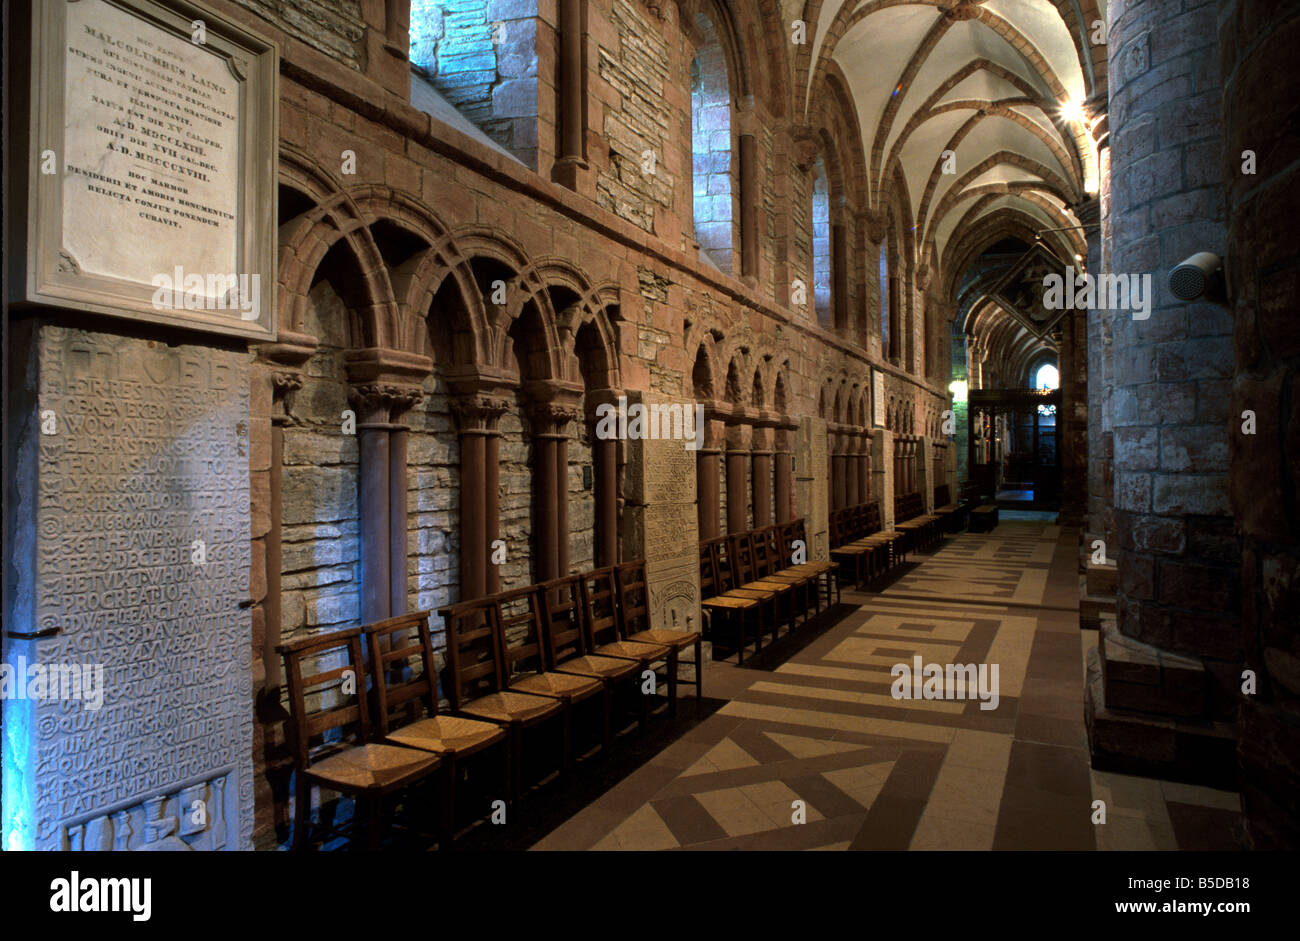 St. Magnus Cathedral, one of the best preserved cathedrals in Scotland, Kirkwall, Mainland, Orkney Islands, Scotland - Stock Image